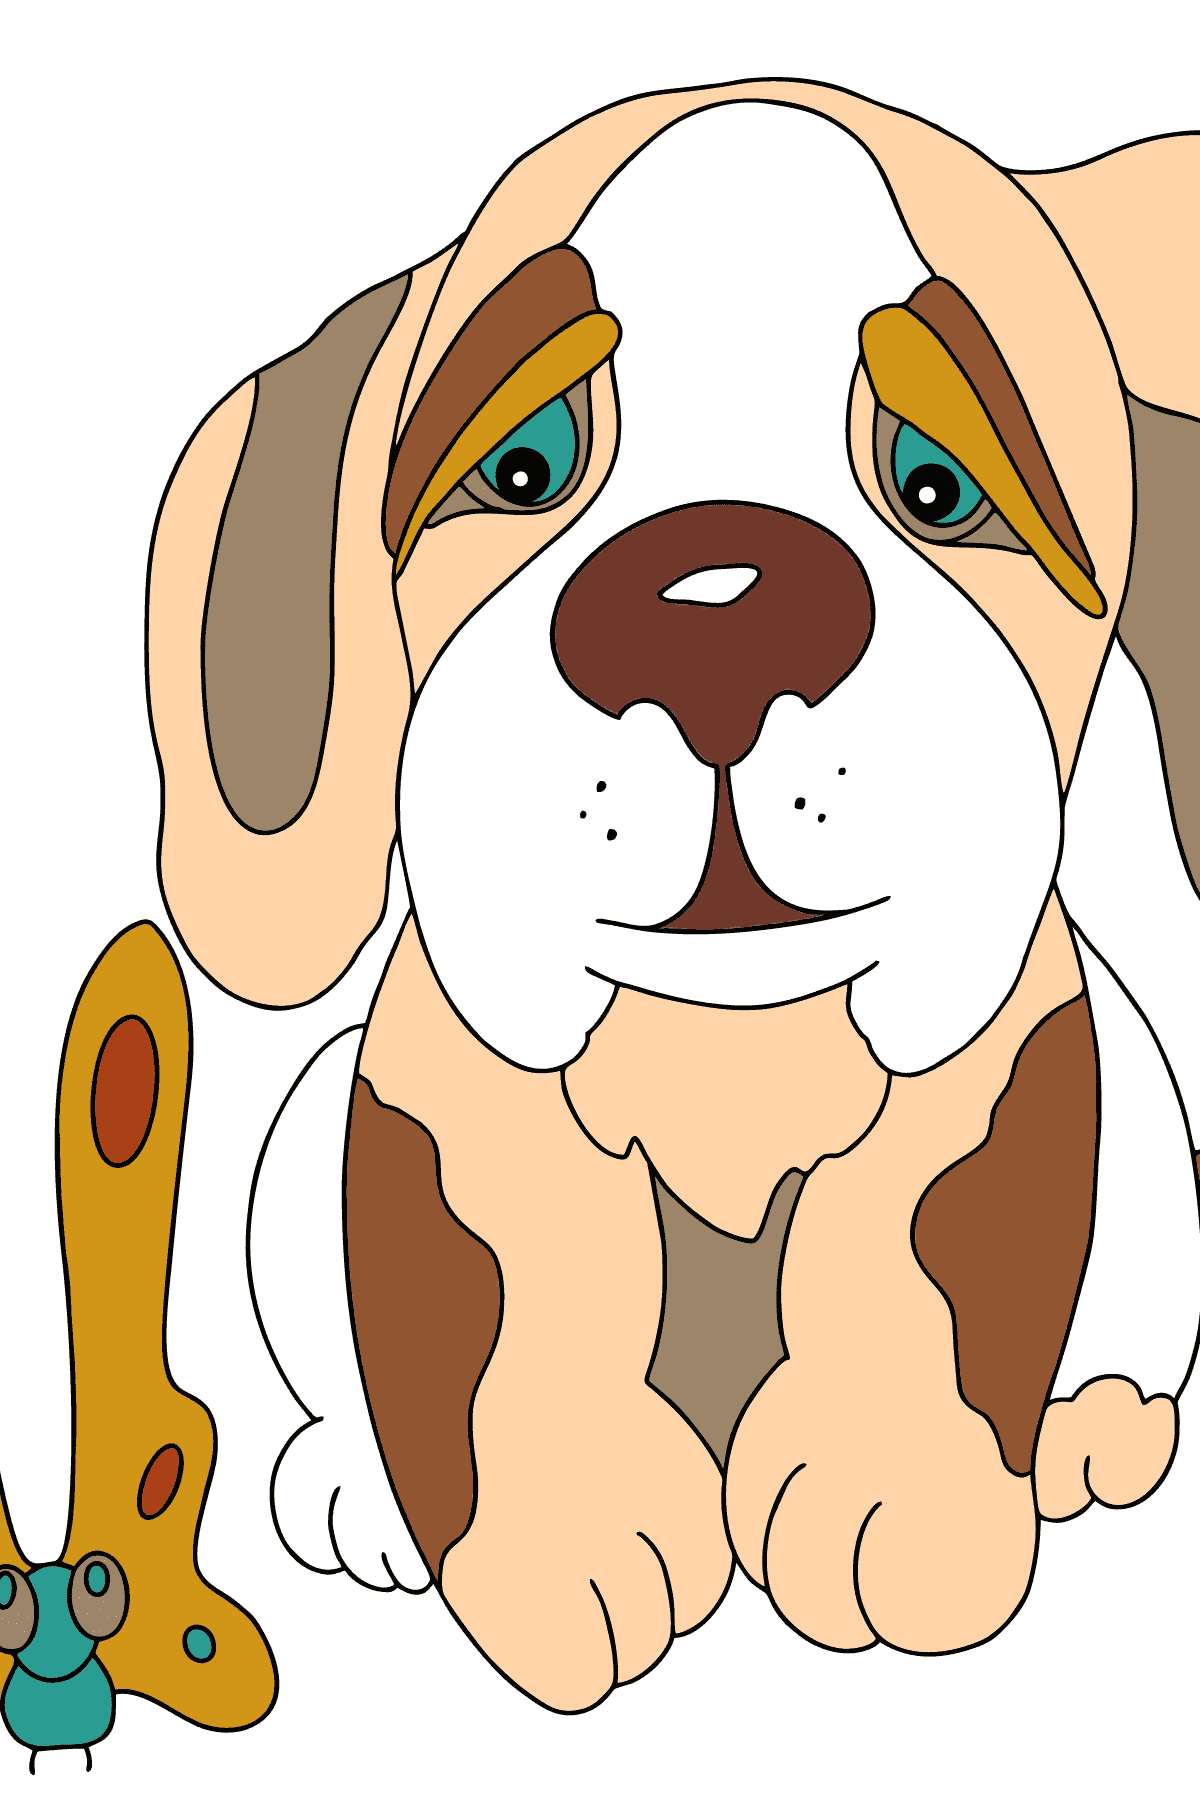 Coloring Page - A Dog is Looking Out a Butterfly for Children